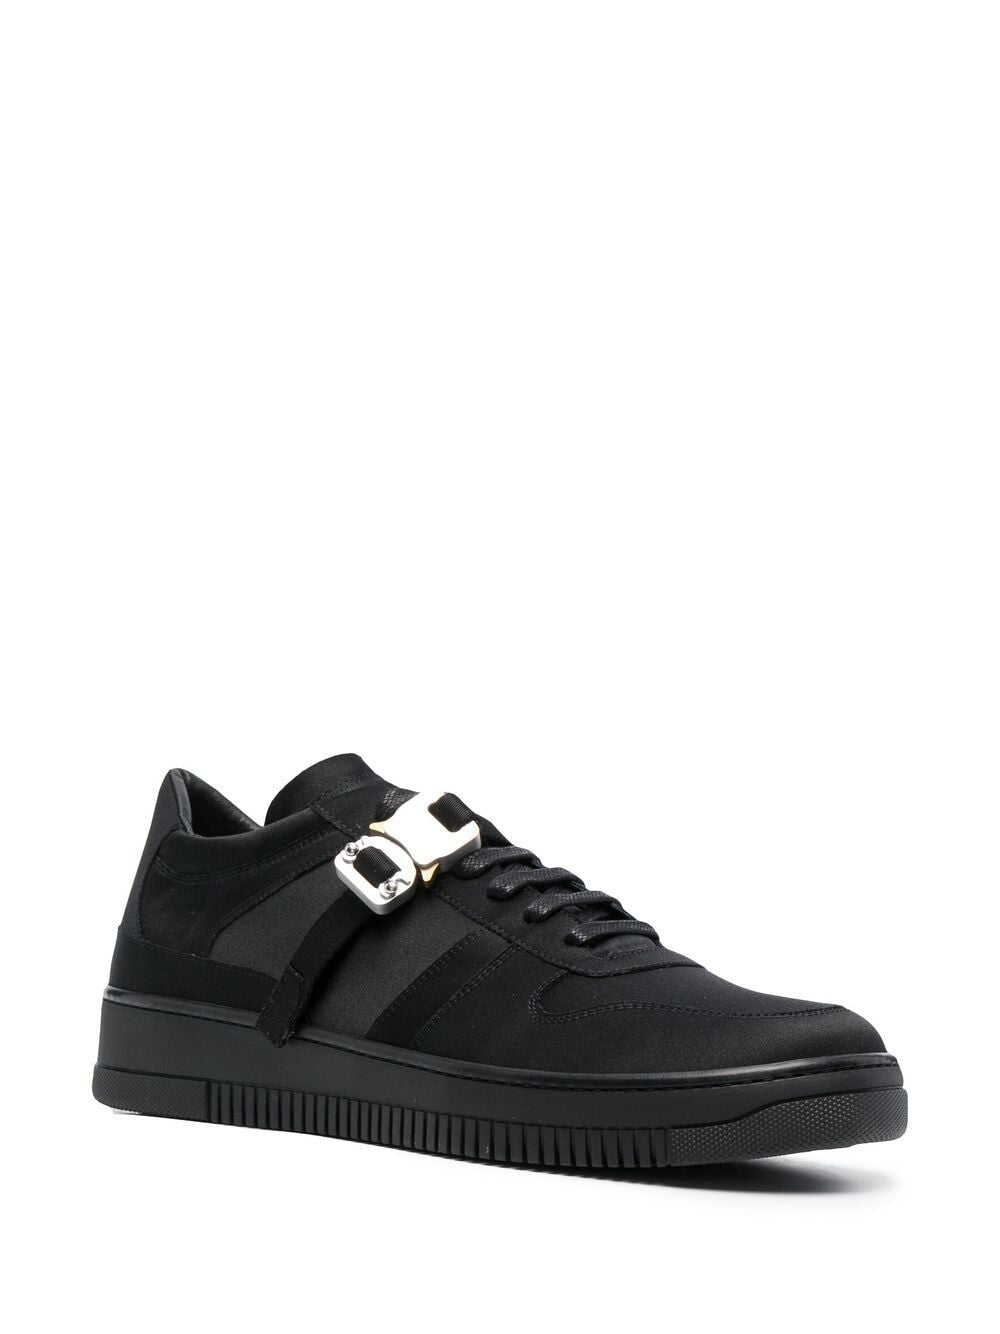 1017 ALYX 9SM MEN SATIN BUCKLE LOW SNEAKERS